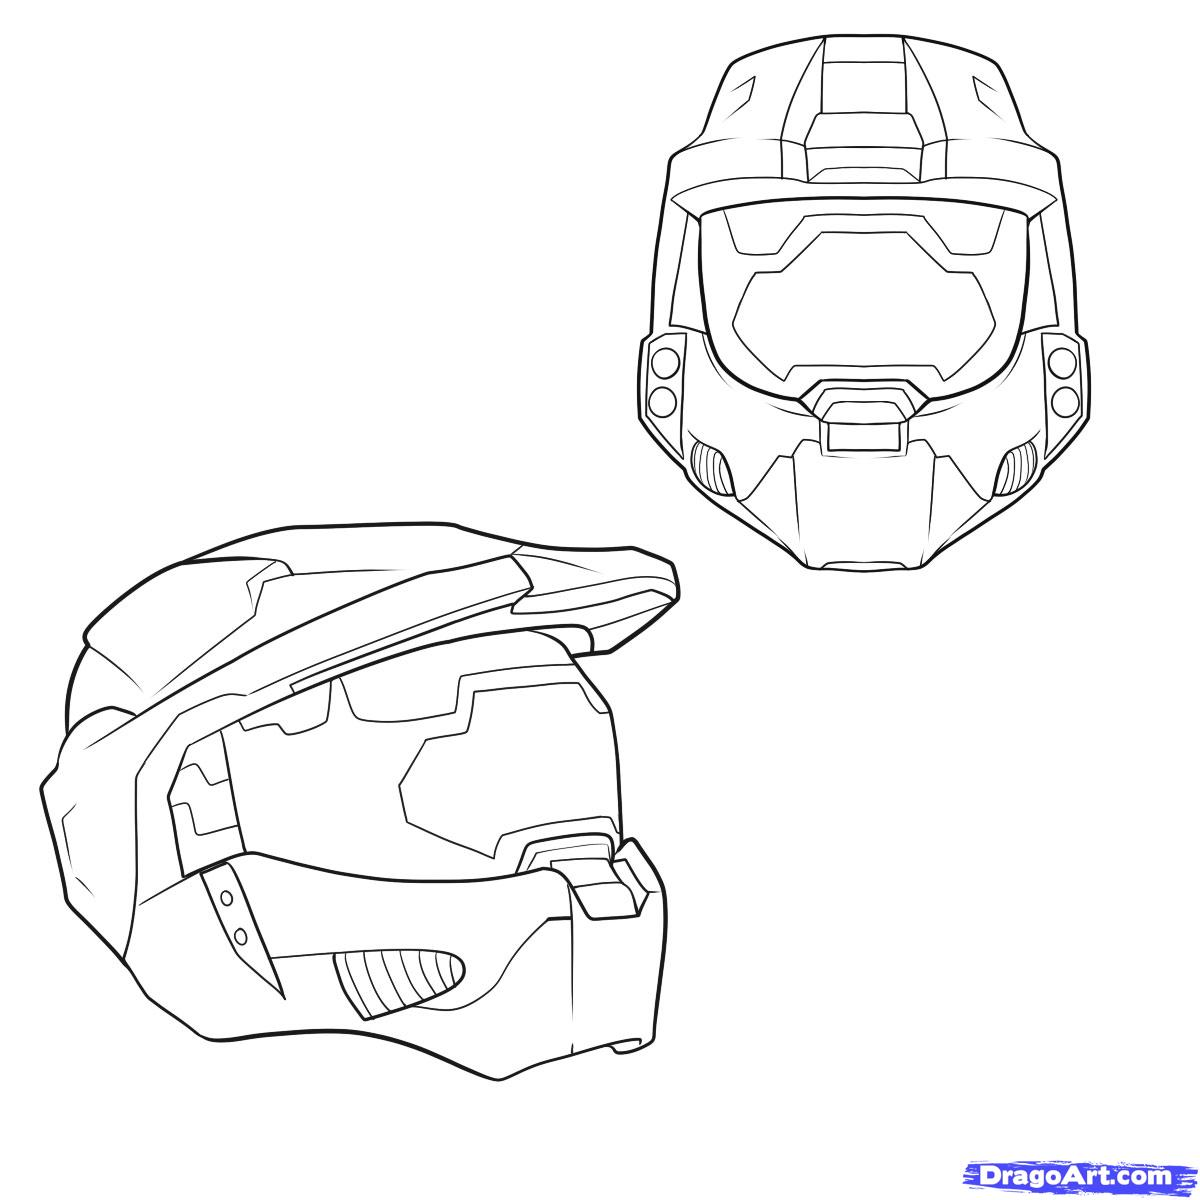 Halo Reach Mountains coloring #14, Download drawings